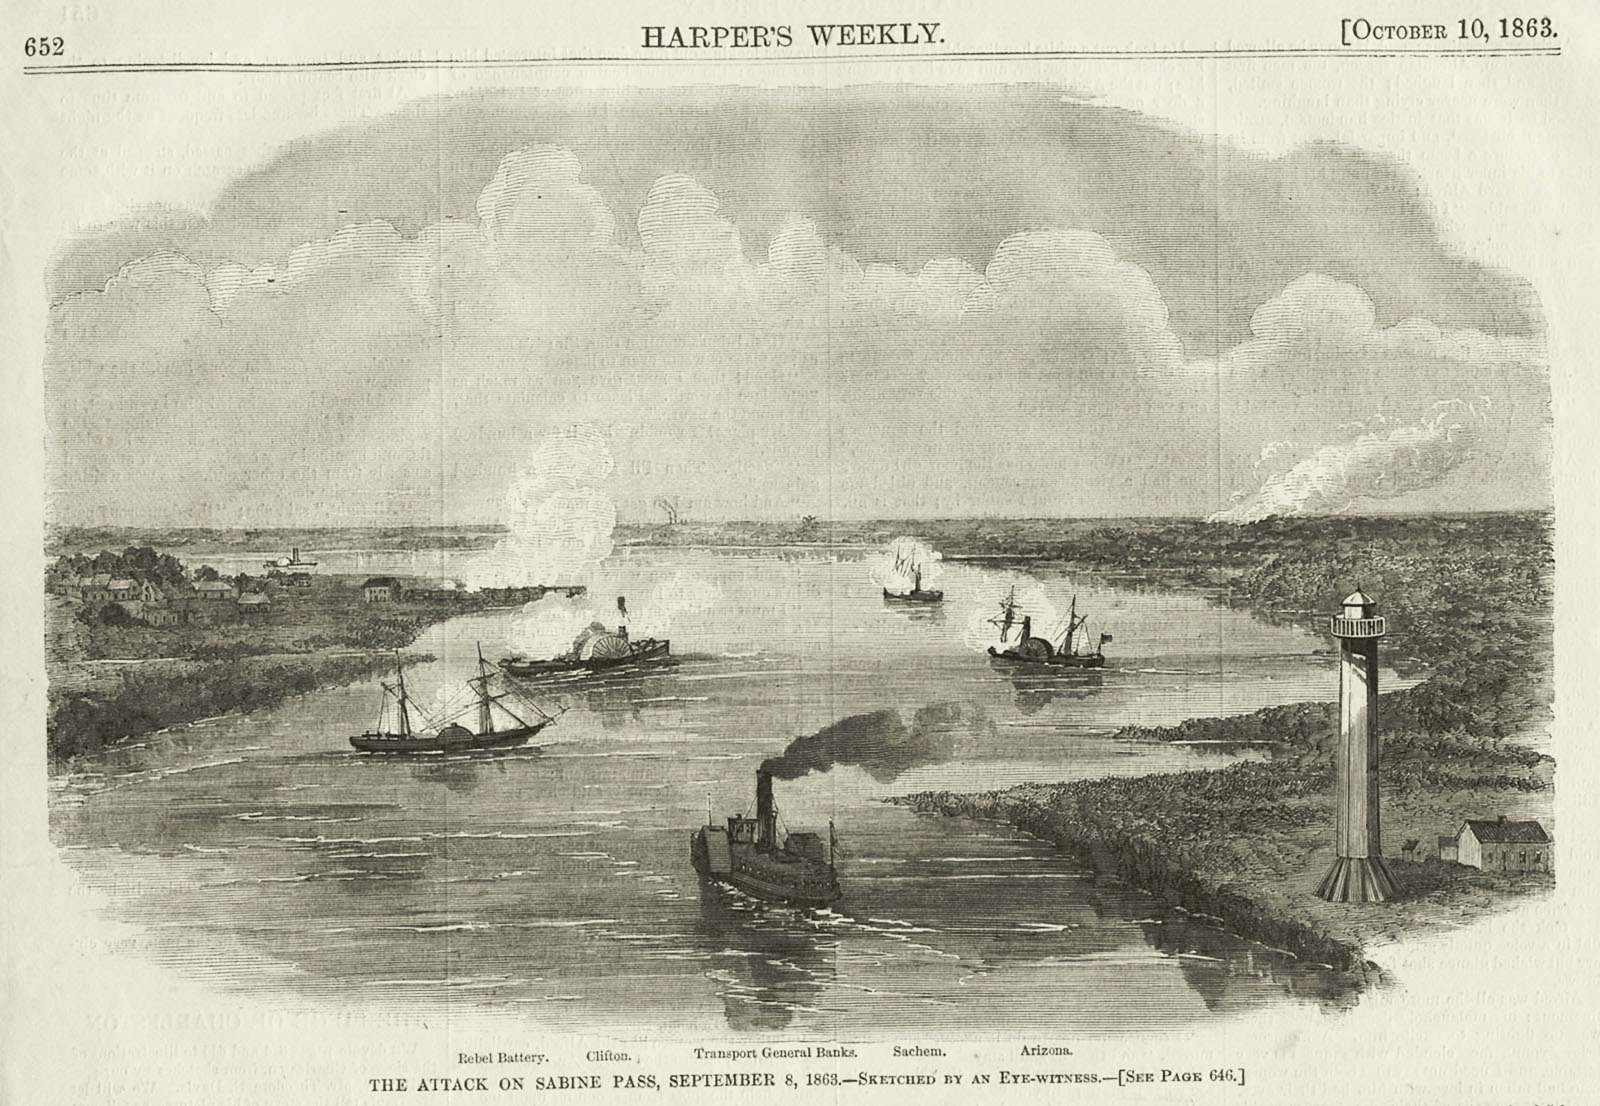 sabine pass women Two confederate ships drive away two union ships as the rebels recapture sabine pass, texas, and open an important port for the confederacysabine pass lay at the.